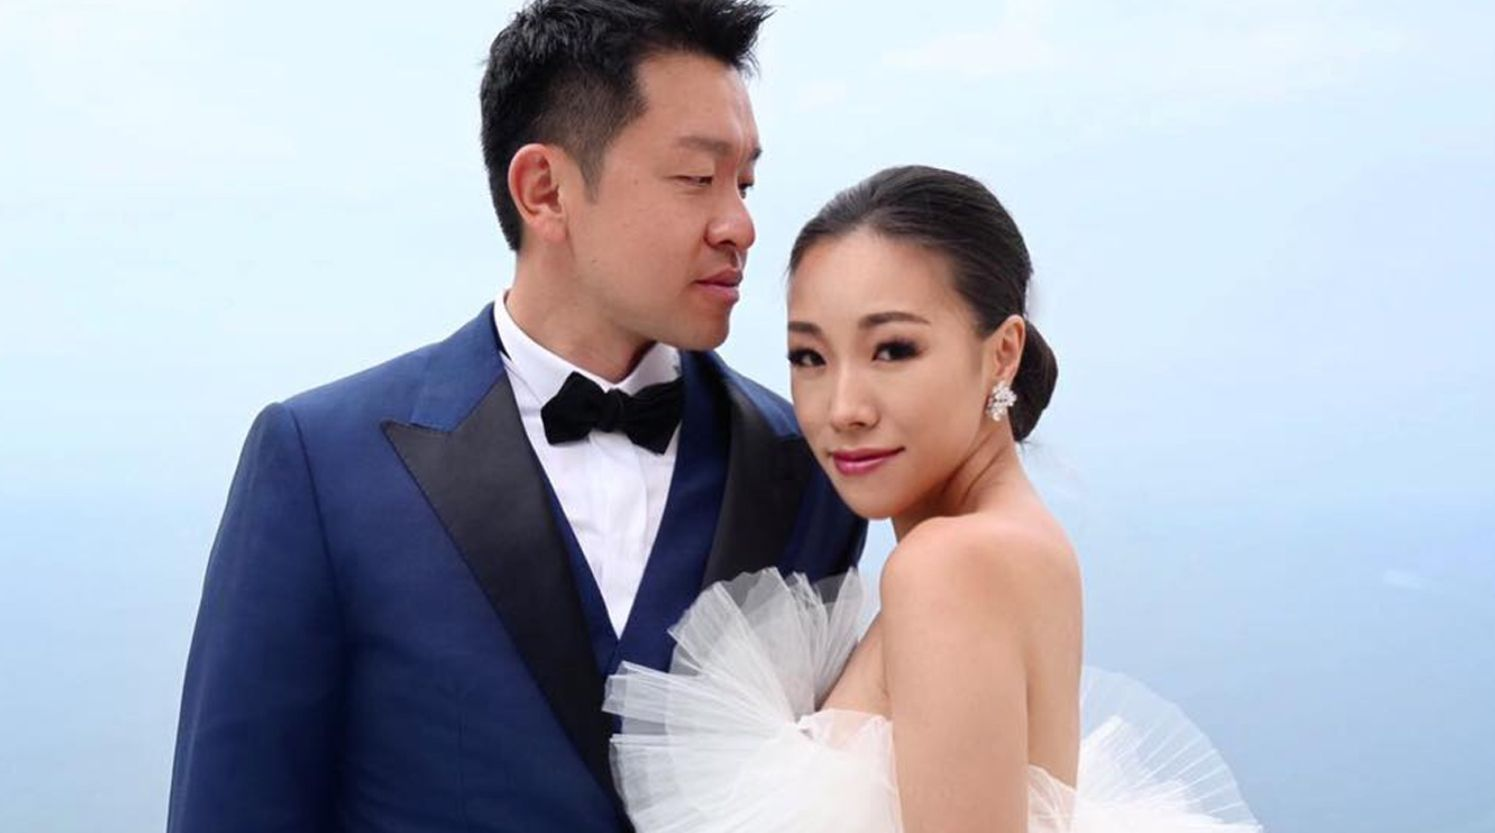 Inside Feiping Chang & Lincoln Li's Wedding